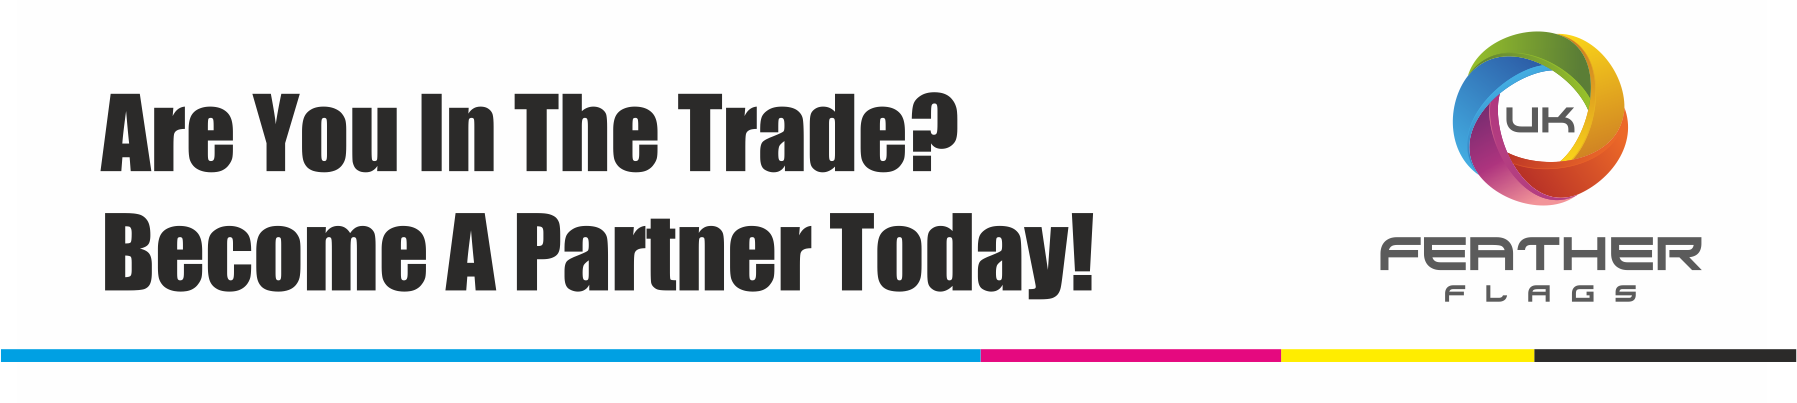 Are you in the trade? We would like to hear from you. Feather flag reseller prices no one else can beat.